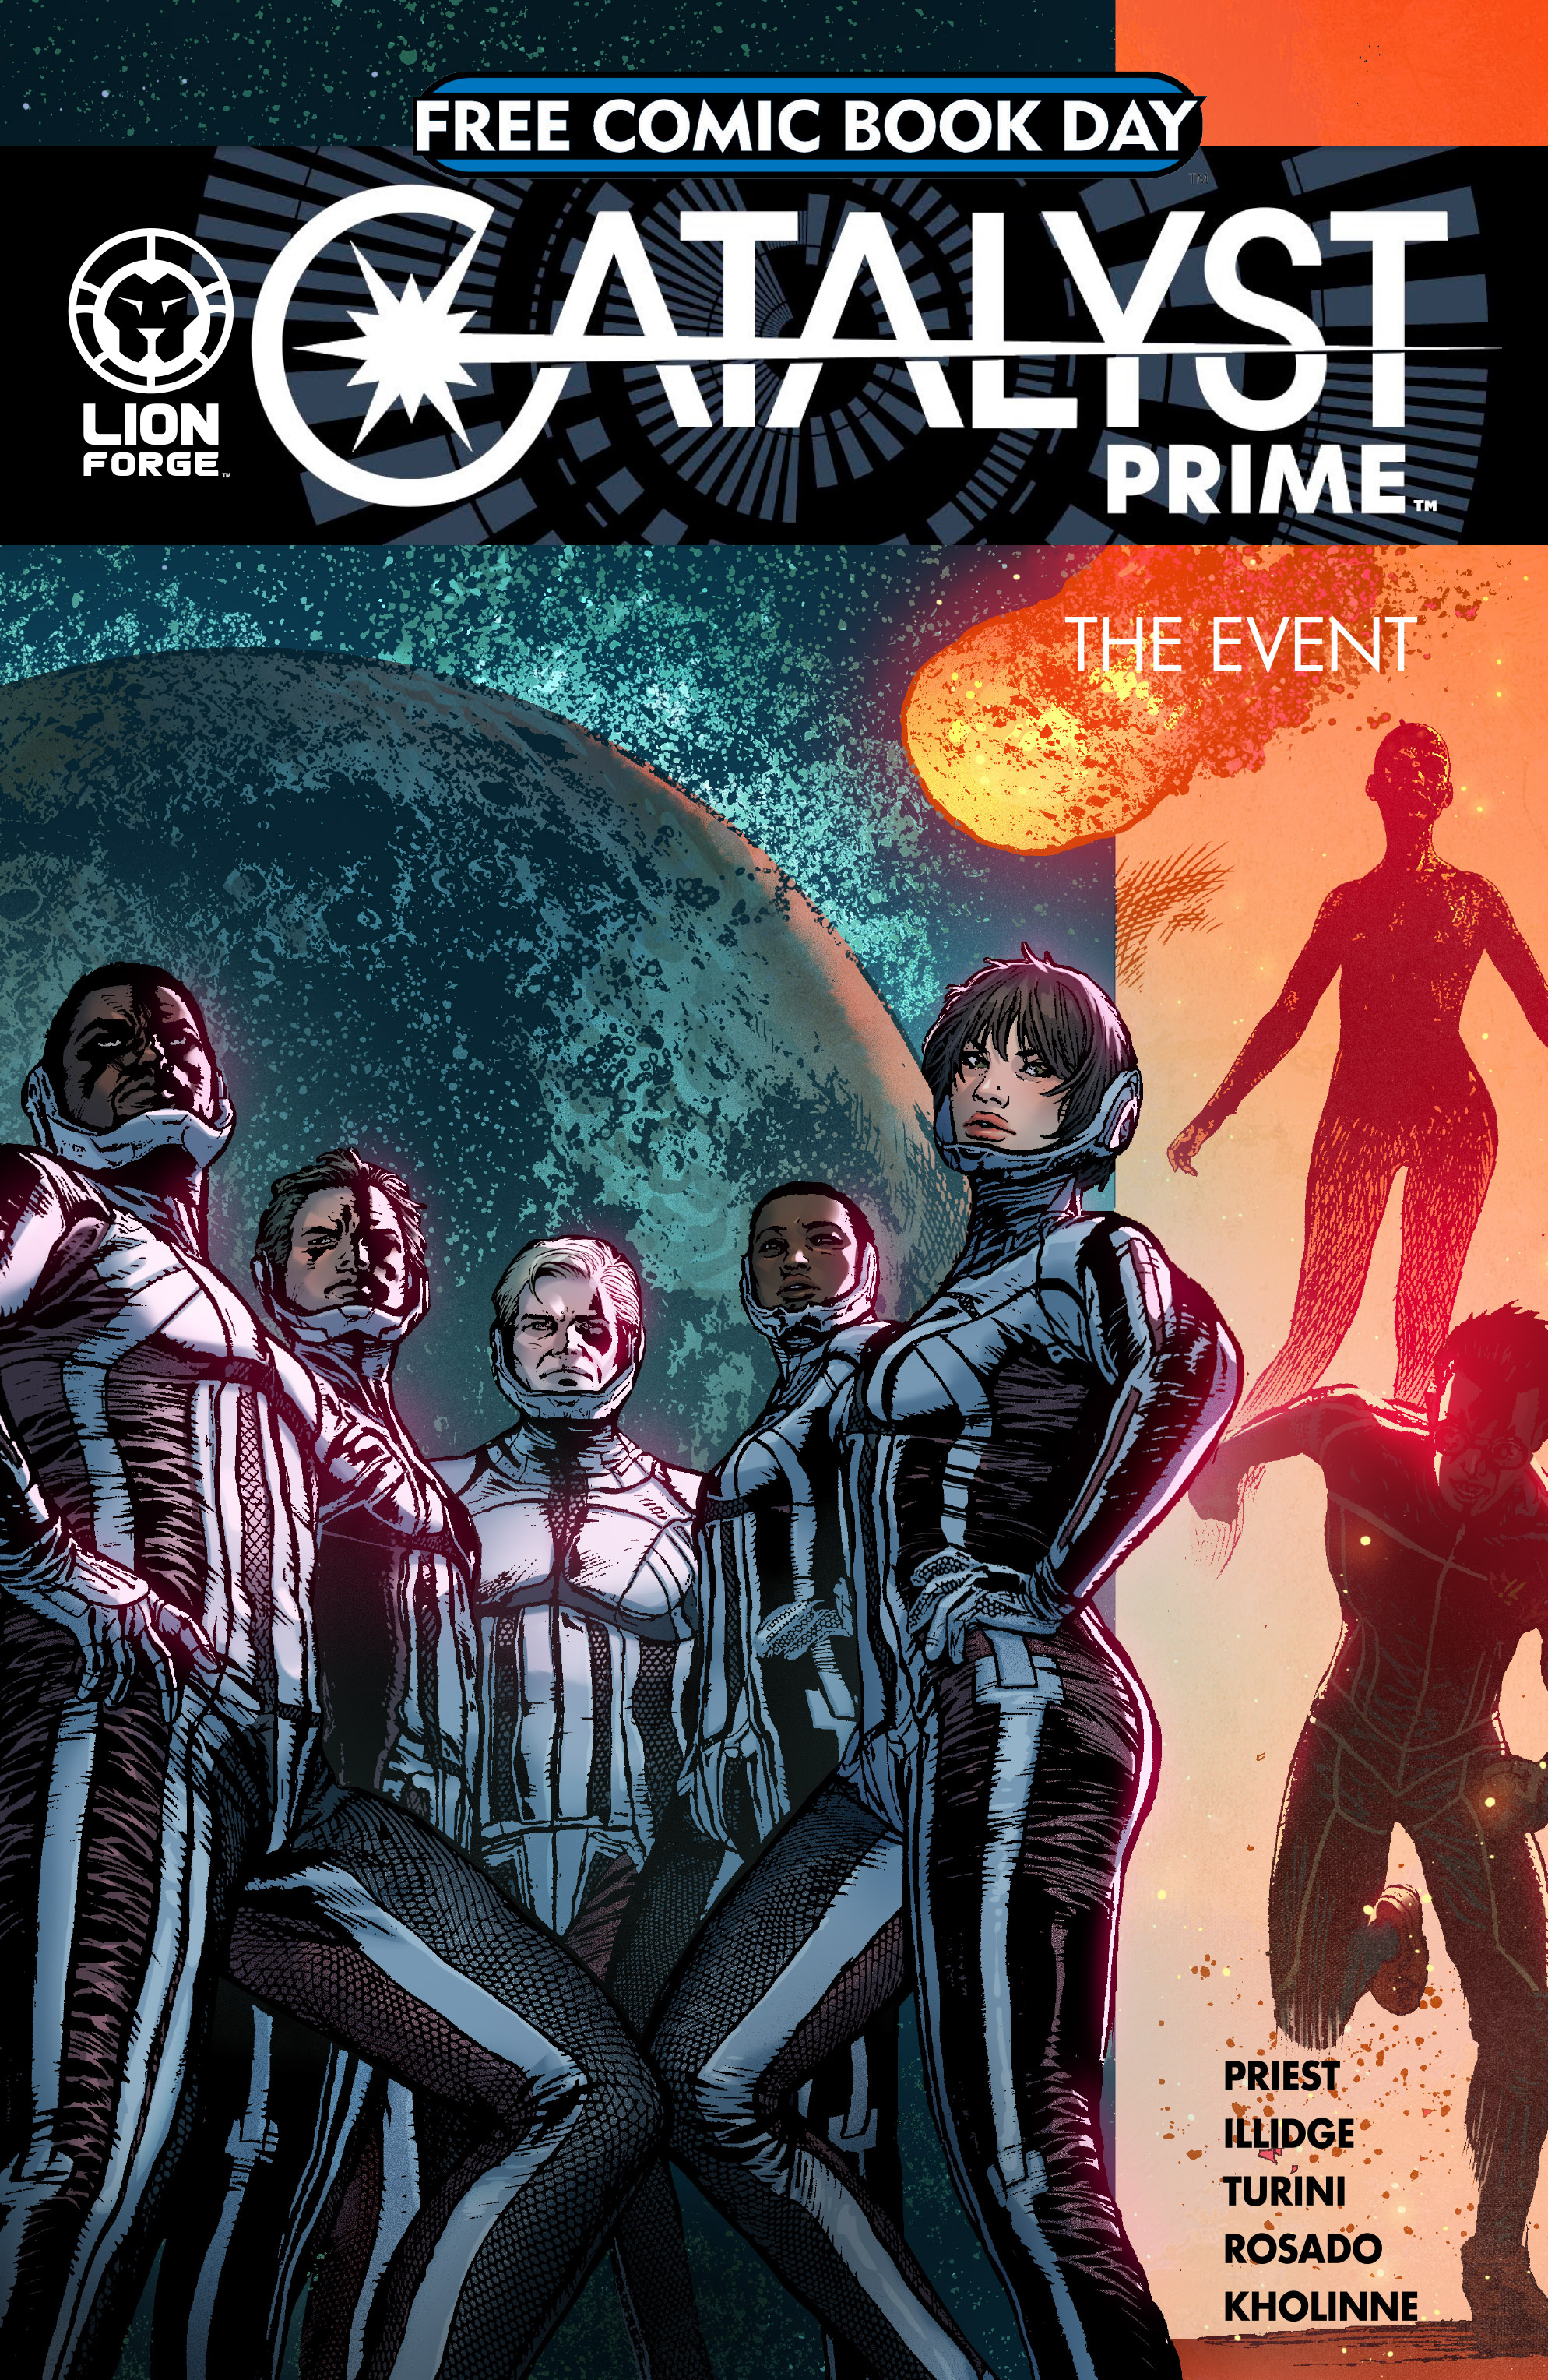 Read online Free Comic Book Day 2017 comic -  Issue # Catalyst Prime - The Event - 1